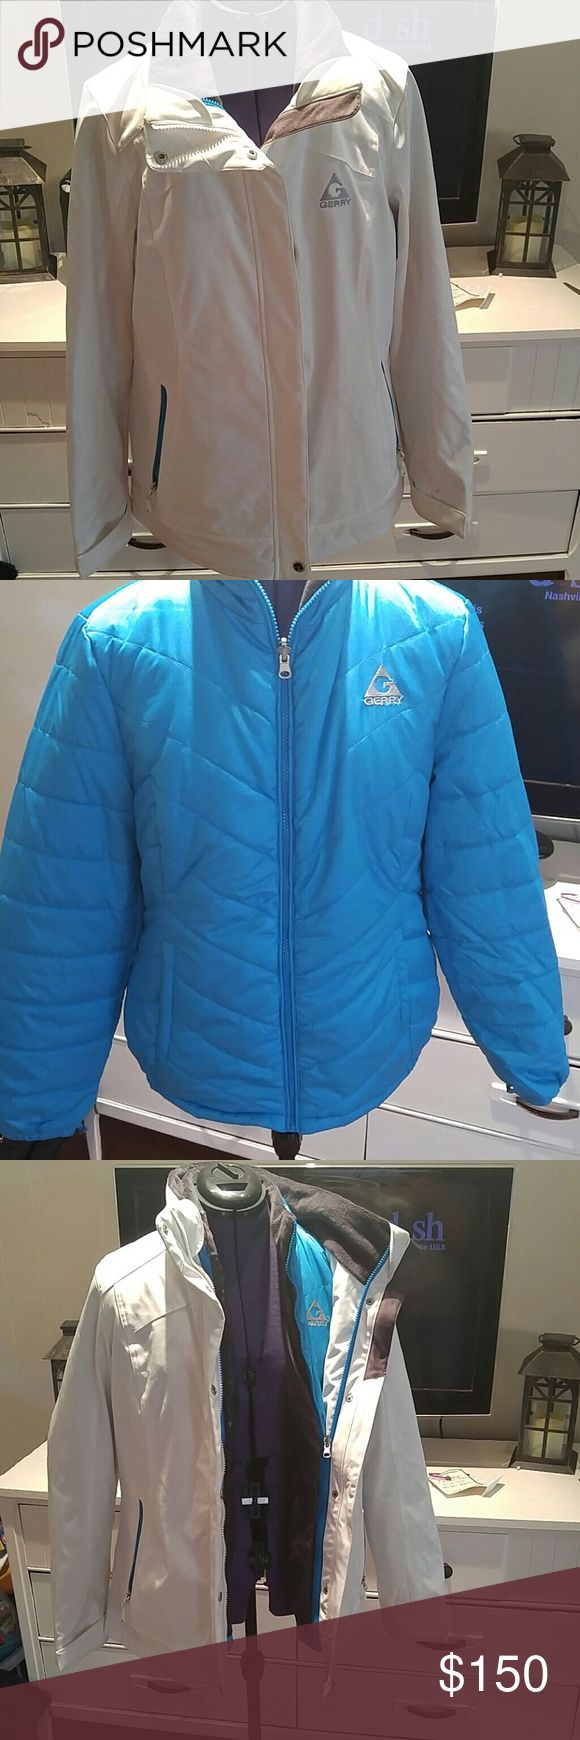 Gerry Ski jacket 2 in 1 ski jacket.  1 jacket is white and the other is teal. The white jacket will need to be dry cleaned as I did wear one time tubing.  The jackets are very warm and I did wear the teal jacket a couple of time by itself.  Very comfortable.  Bought from Macy's online.  Can also be used as an everyday jacket Gerry Weber Jackets & Coats Puffers